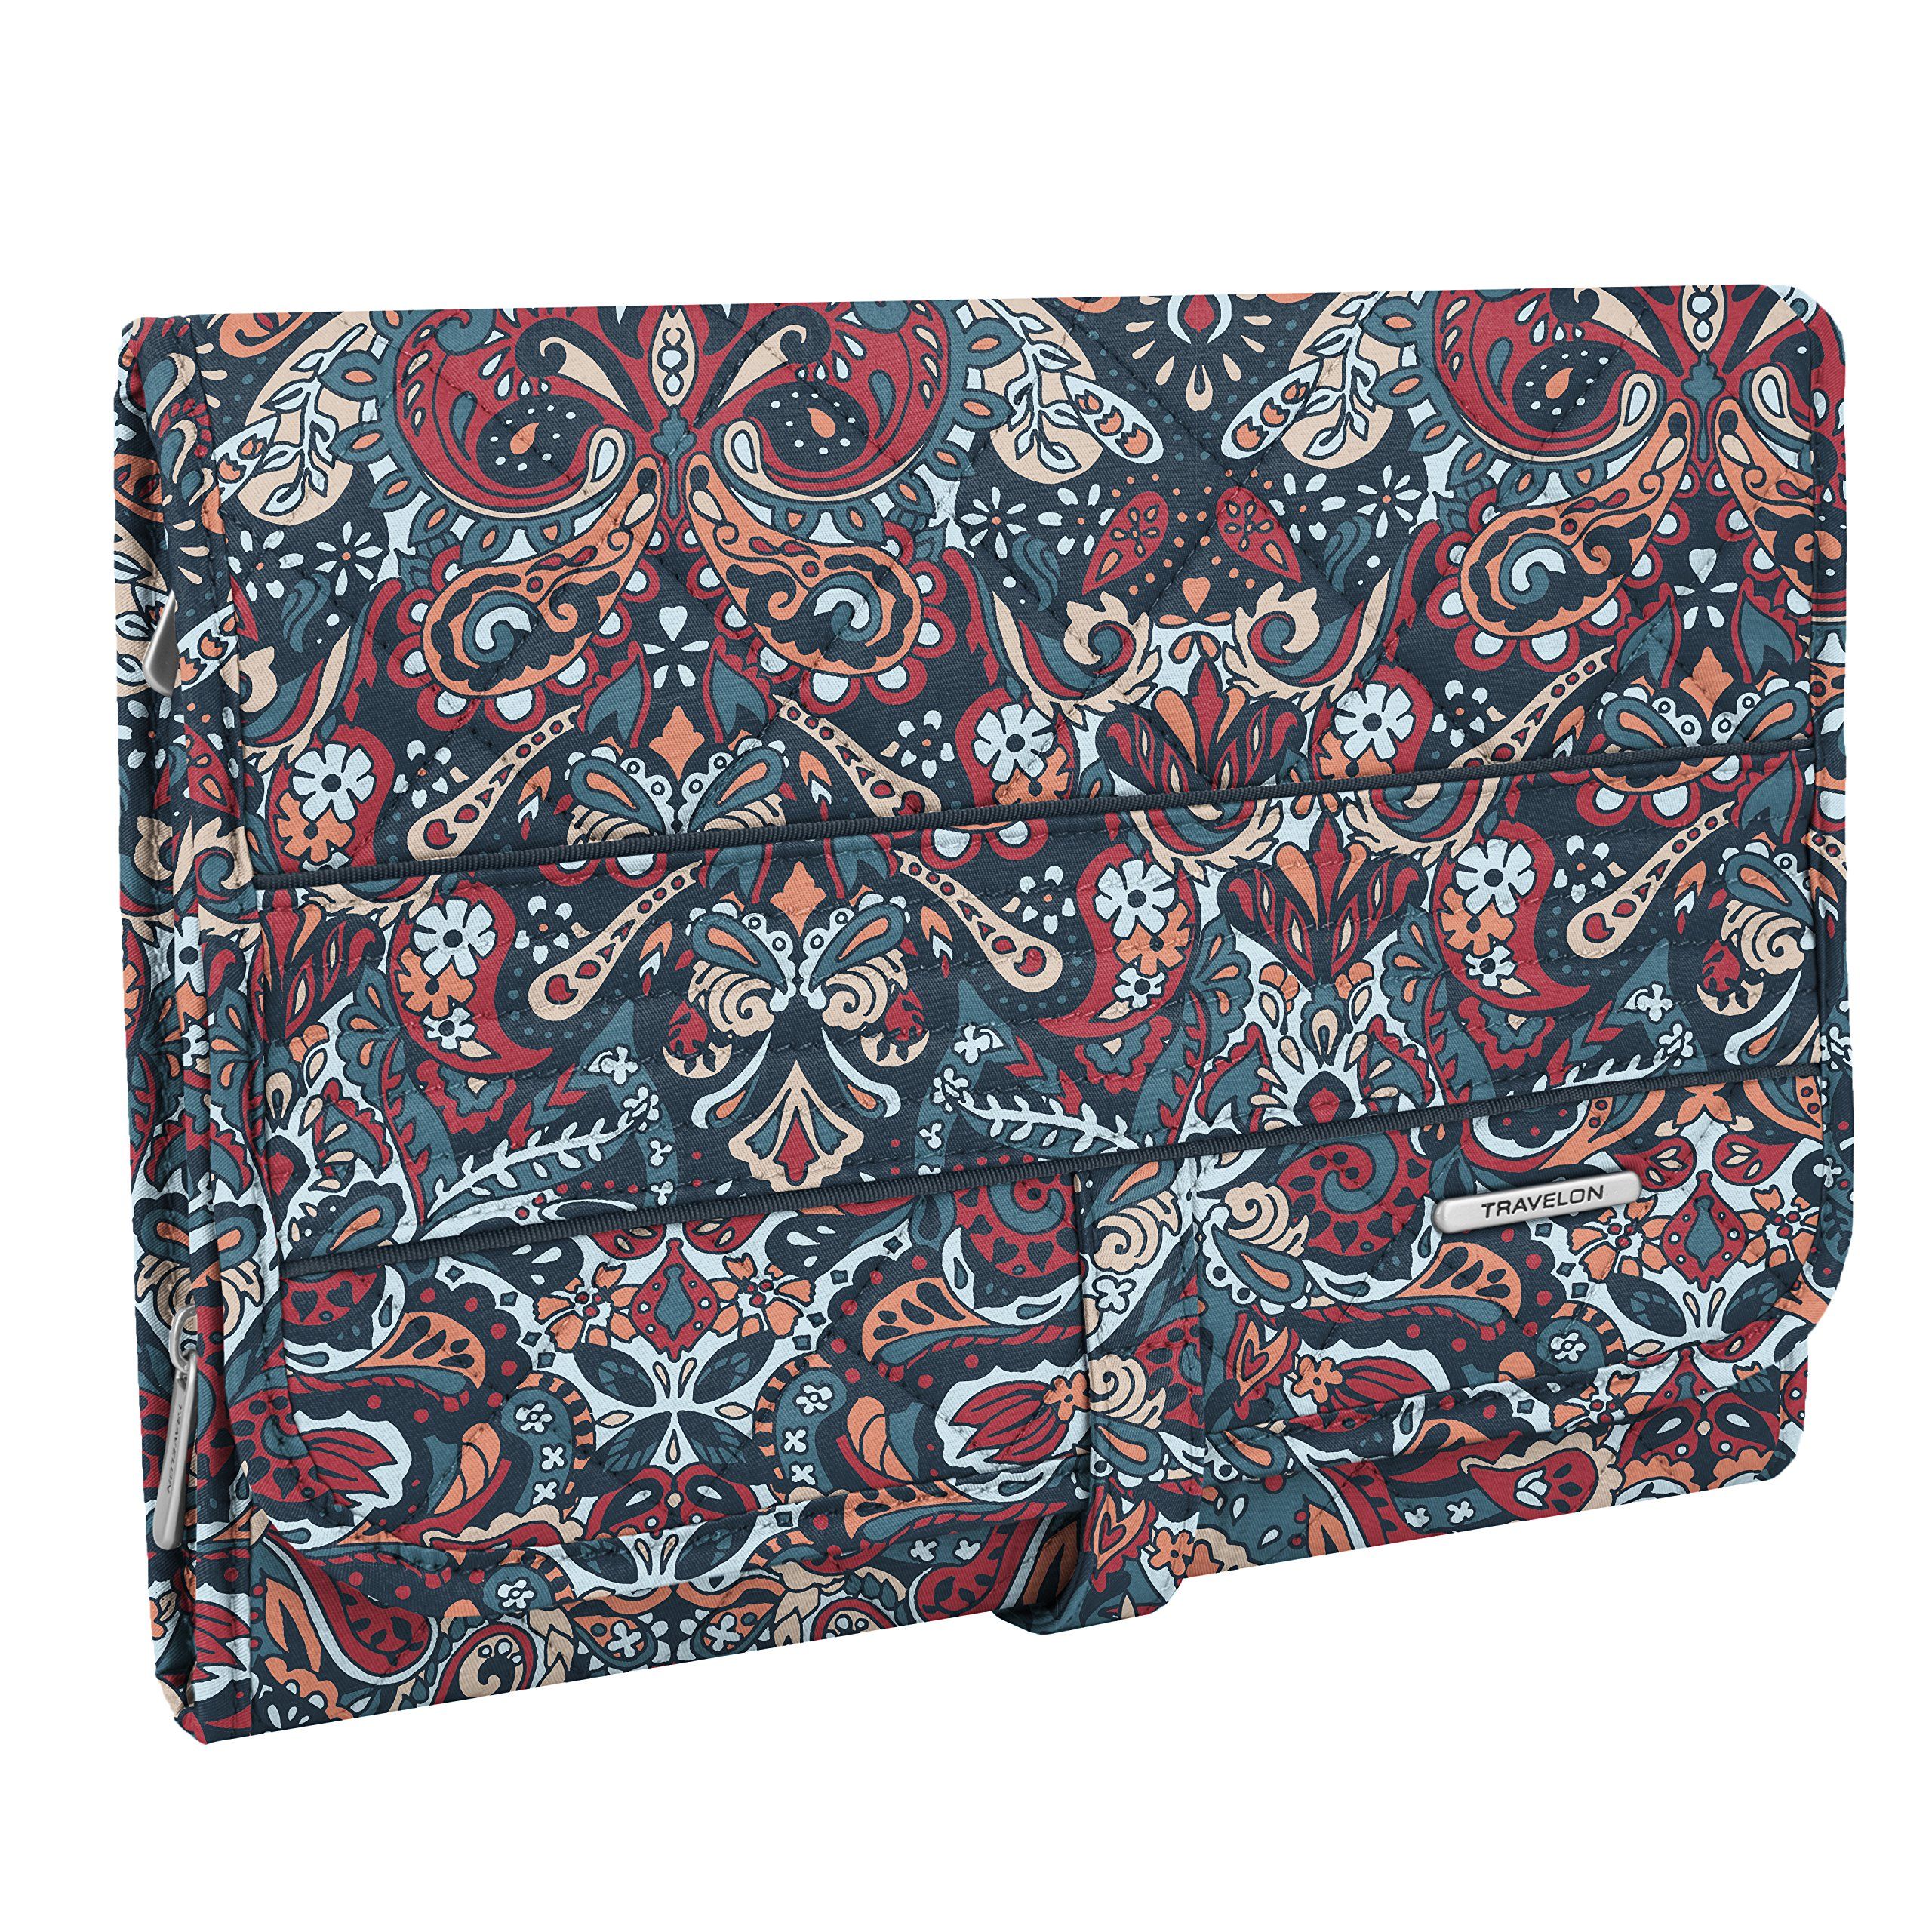 Travelon Women's Boho Trifold Hanging Toiletry Kit, Summer Paisley